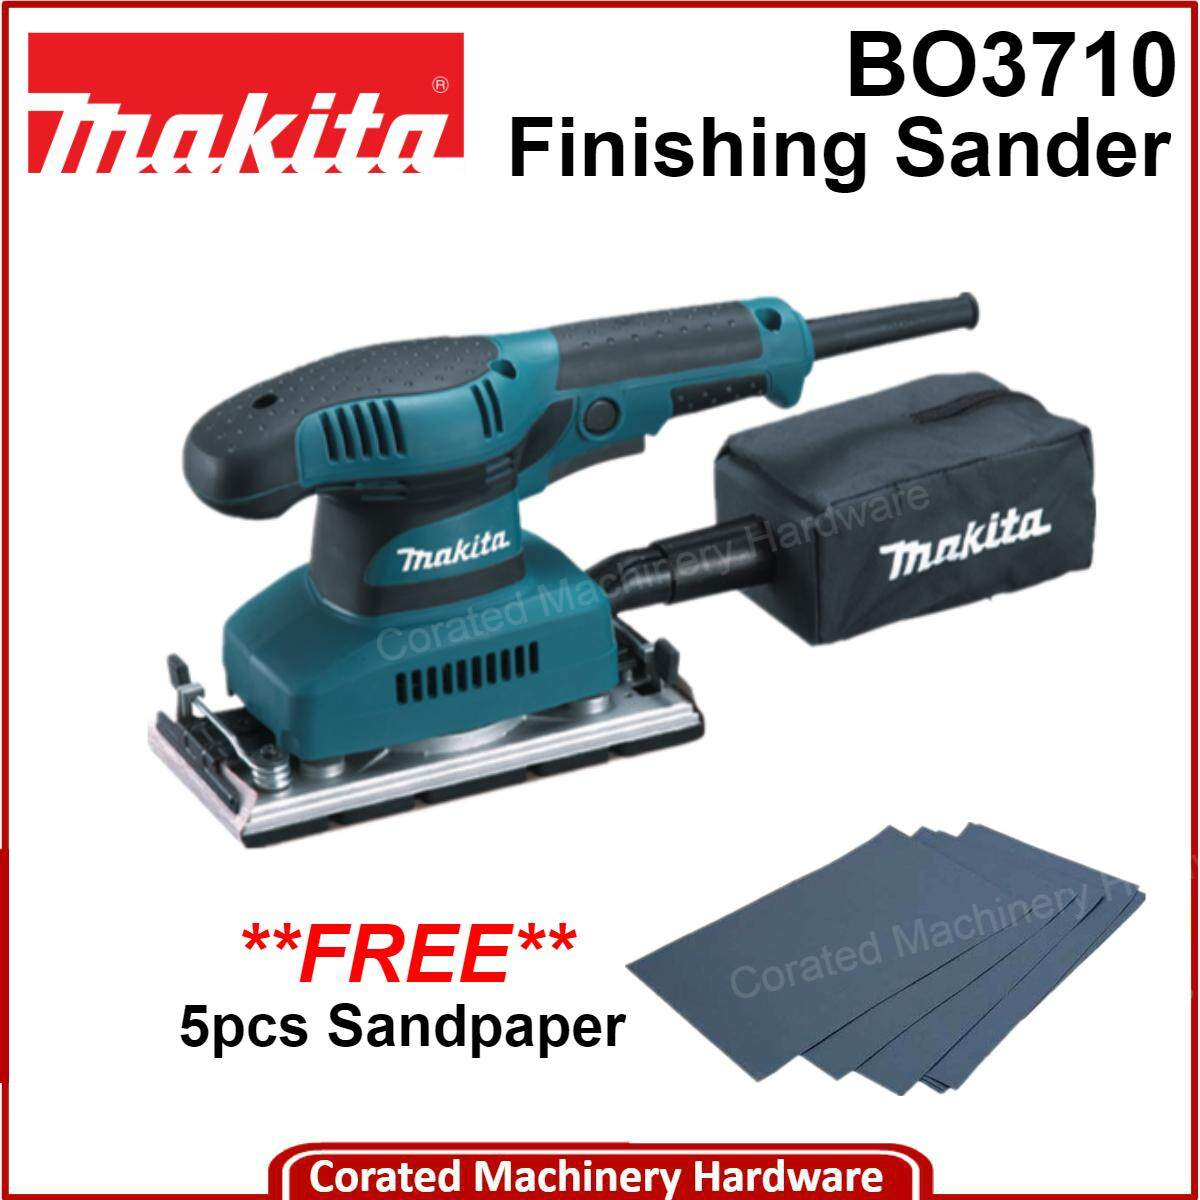 [CORATED] Makita BO3710 Finishing Sander (93 x 185mm, 190W) 1 Year Warranty